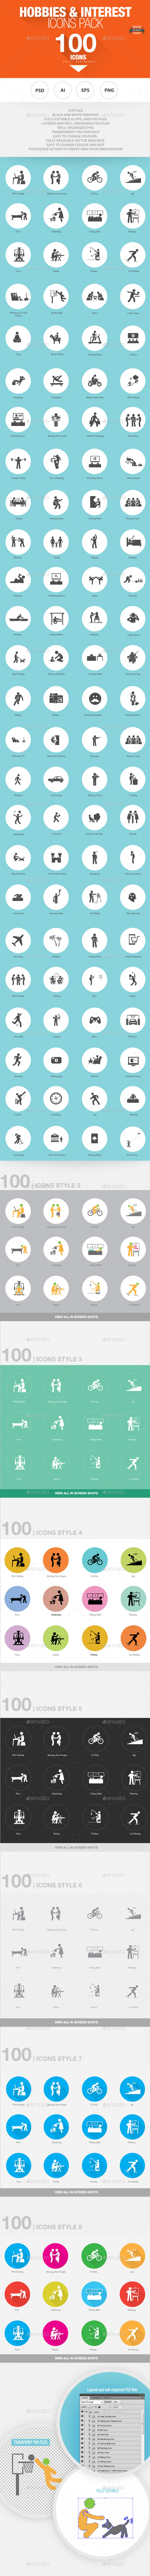 100 - Hobbies and Interests Icons  - Icons